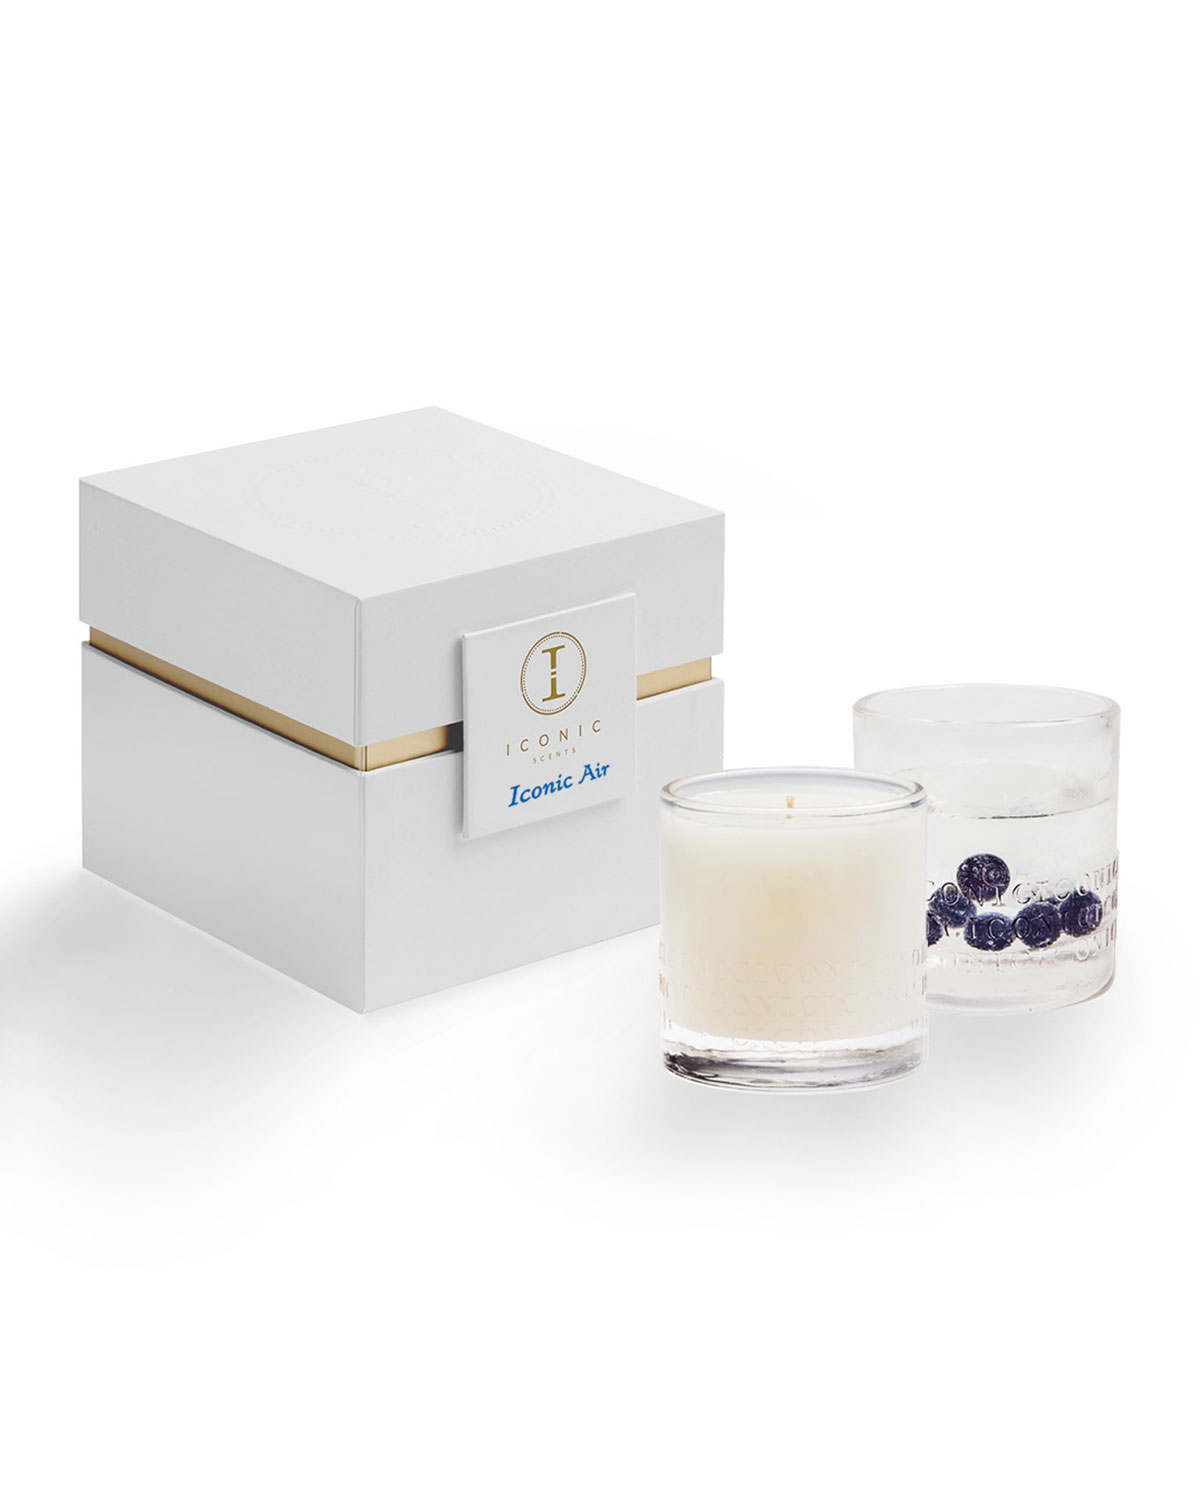 9 oz. Iconic Air Luxury Candle